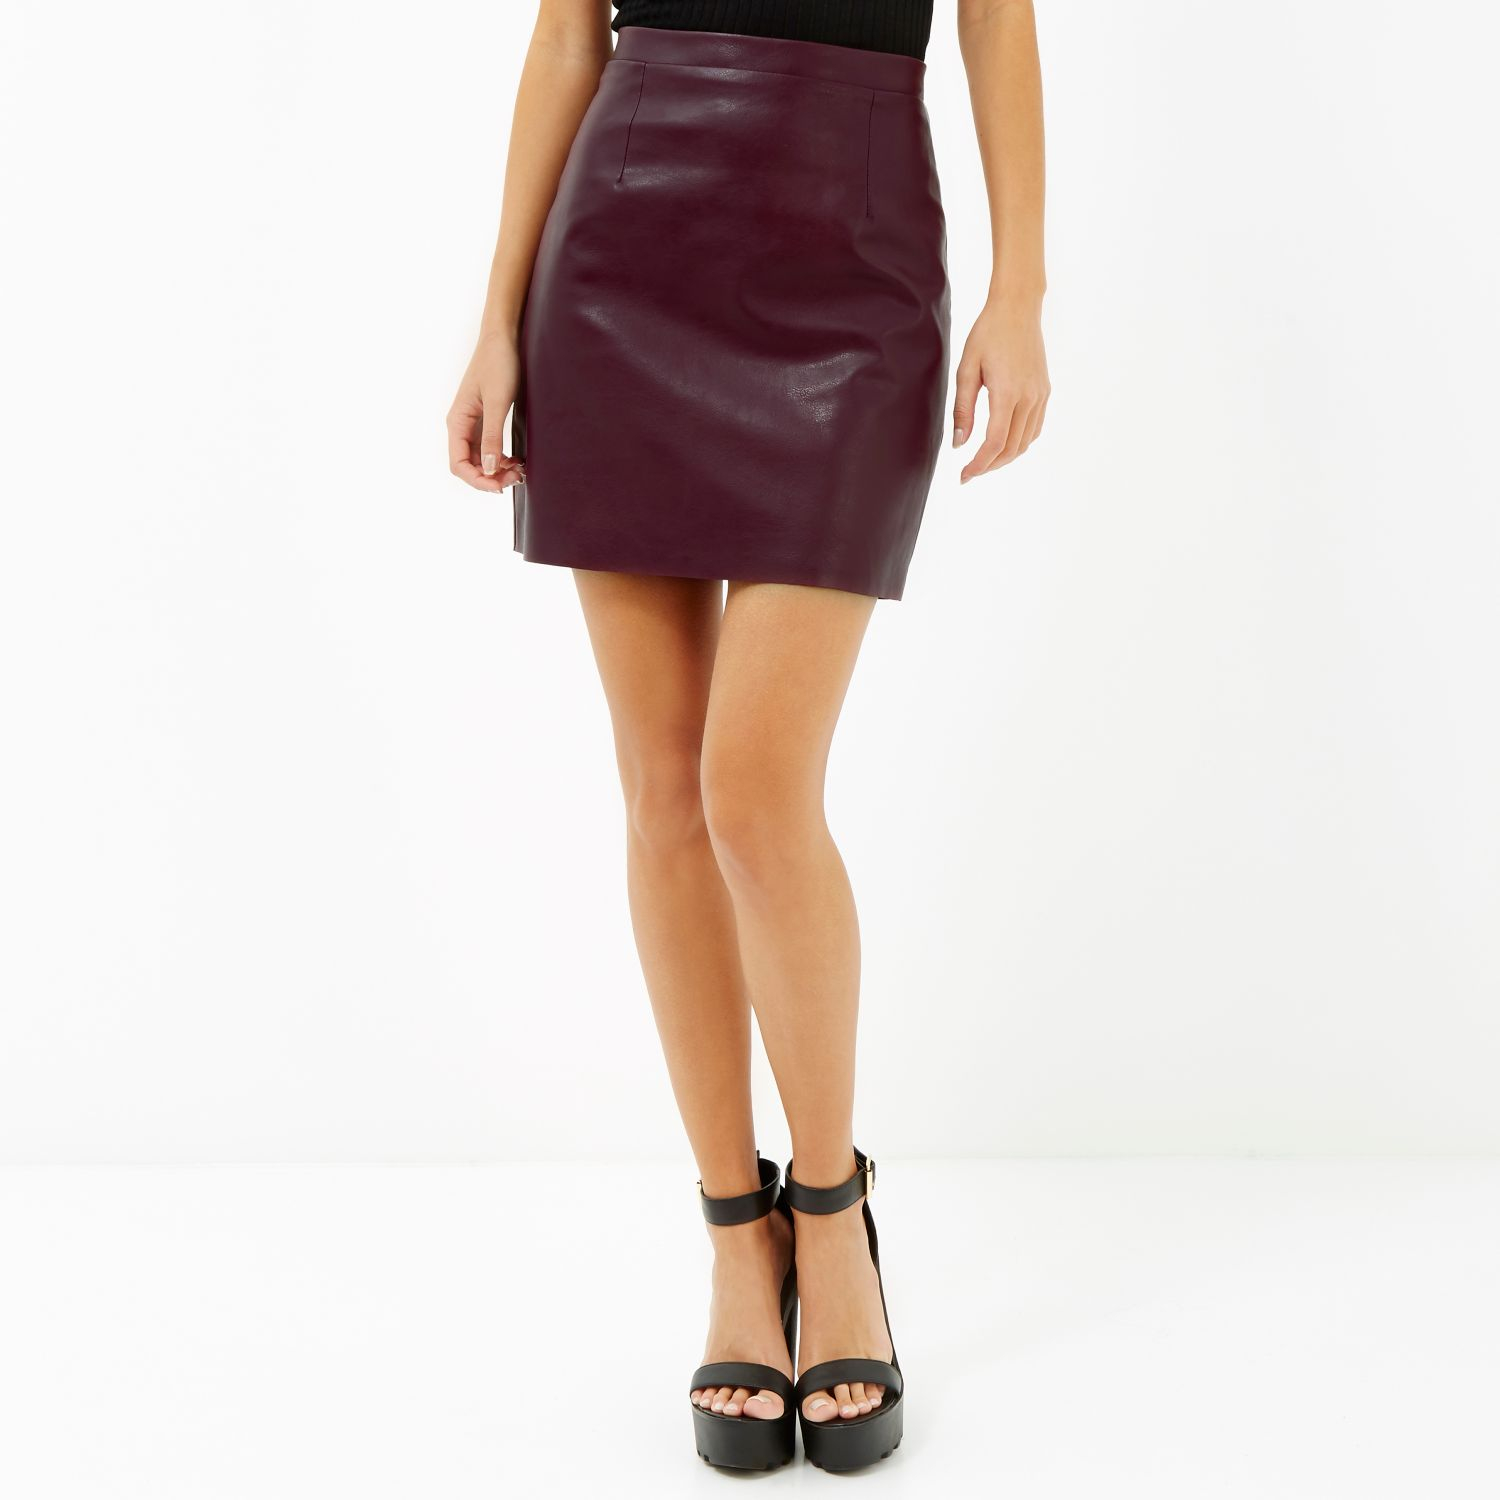 987647ccd Long A Line Leather Skirt